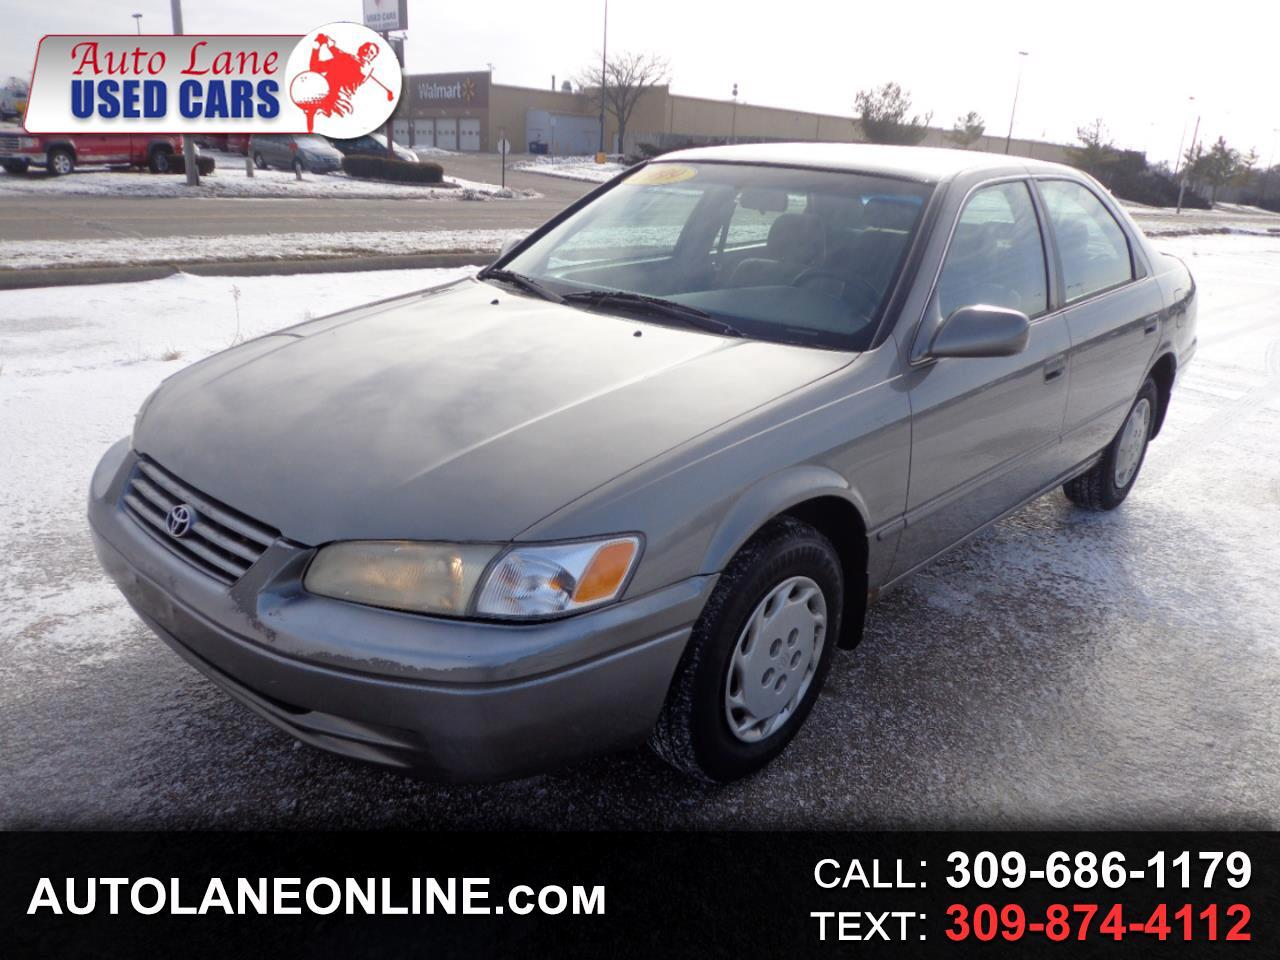 Toyota Camry 4dr Sdn XLE Auto 1999